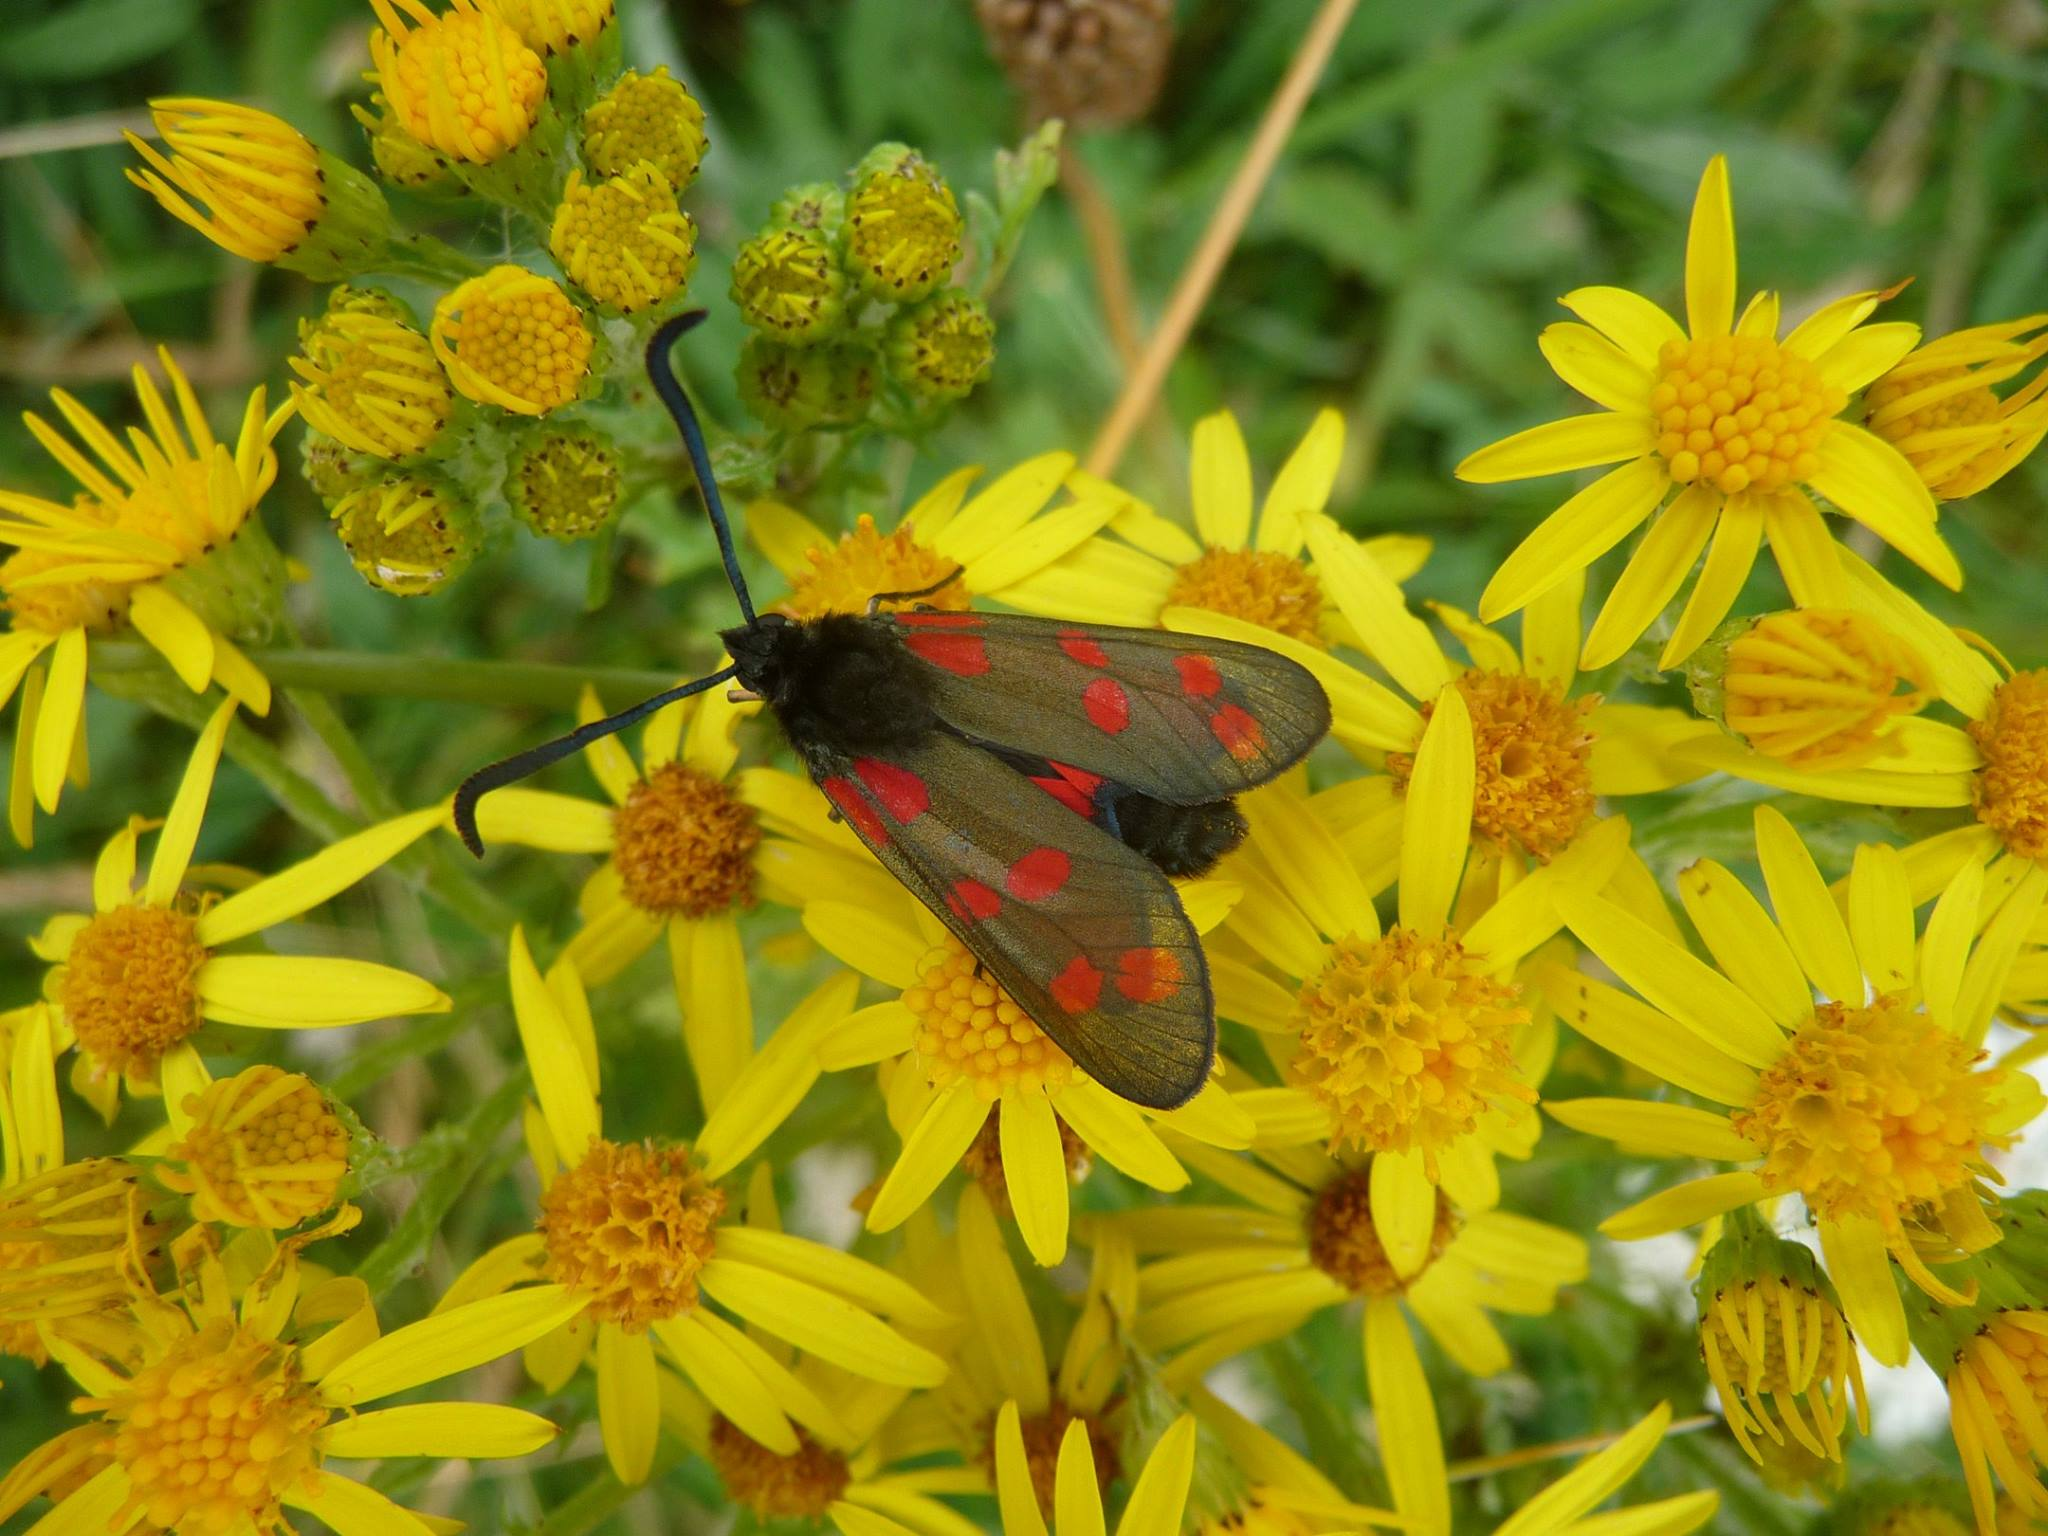 A moth with red spotted wings with yellow daisy like flowers inthe background